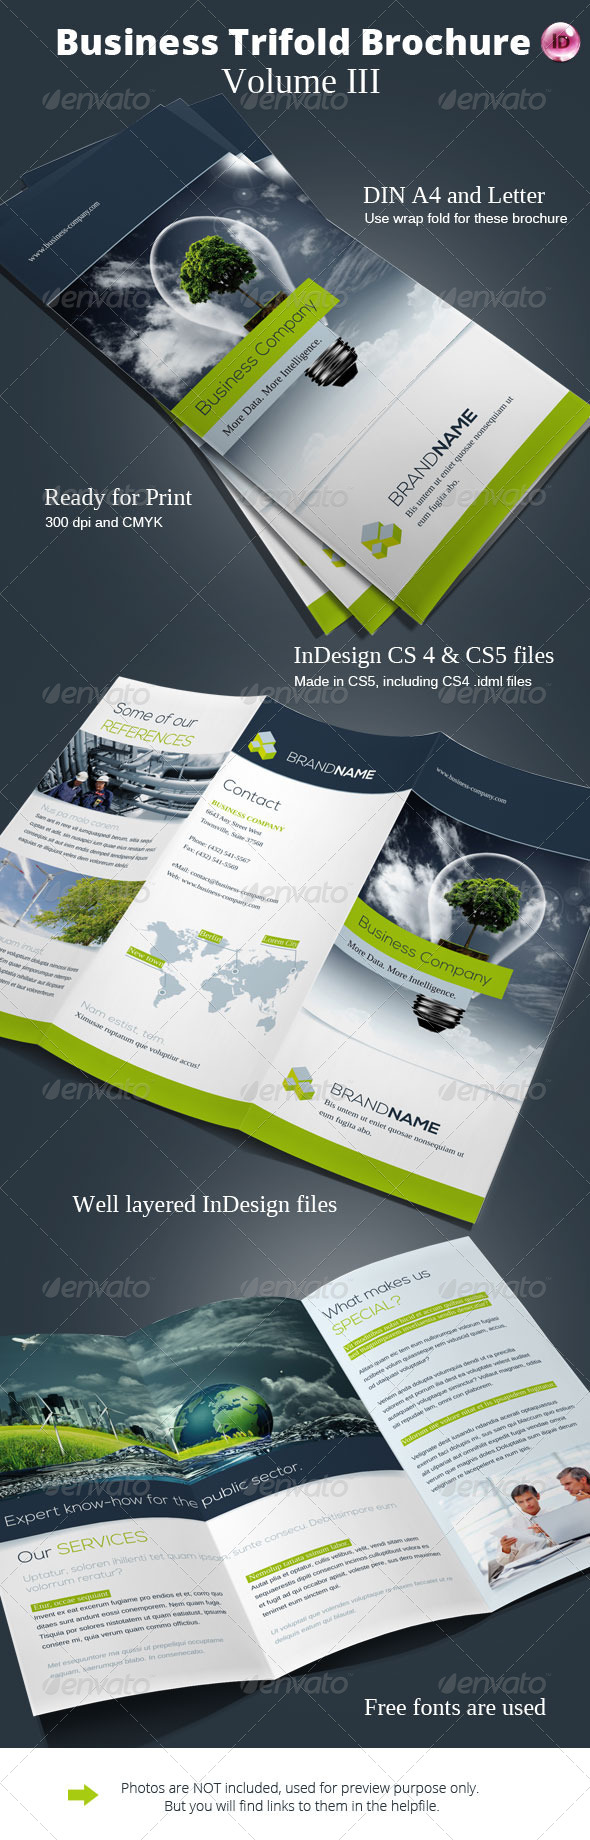 GraphicRiver Business Trifold Brochure Vol III 6710972